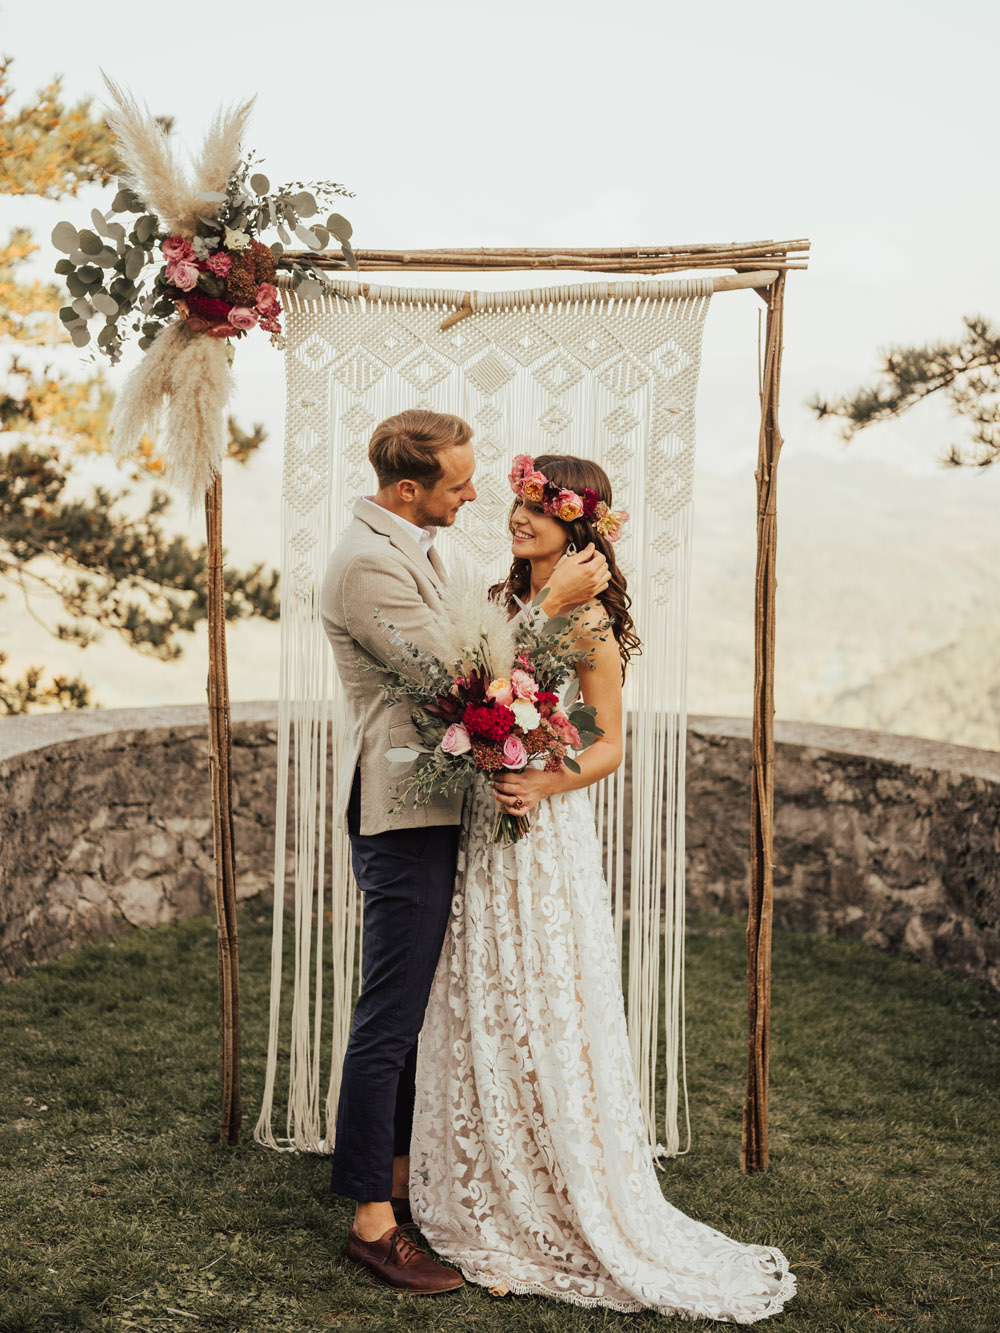 Boho wedding in idyllic mediterranean village